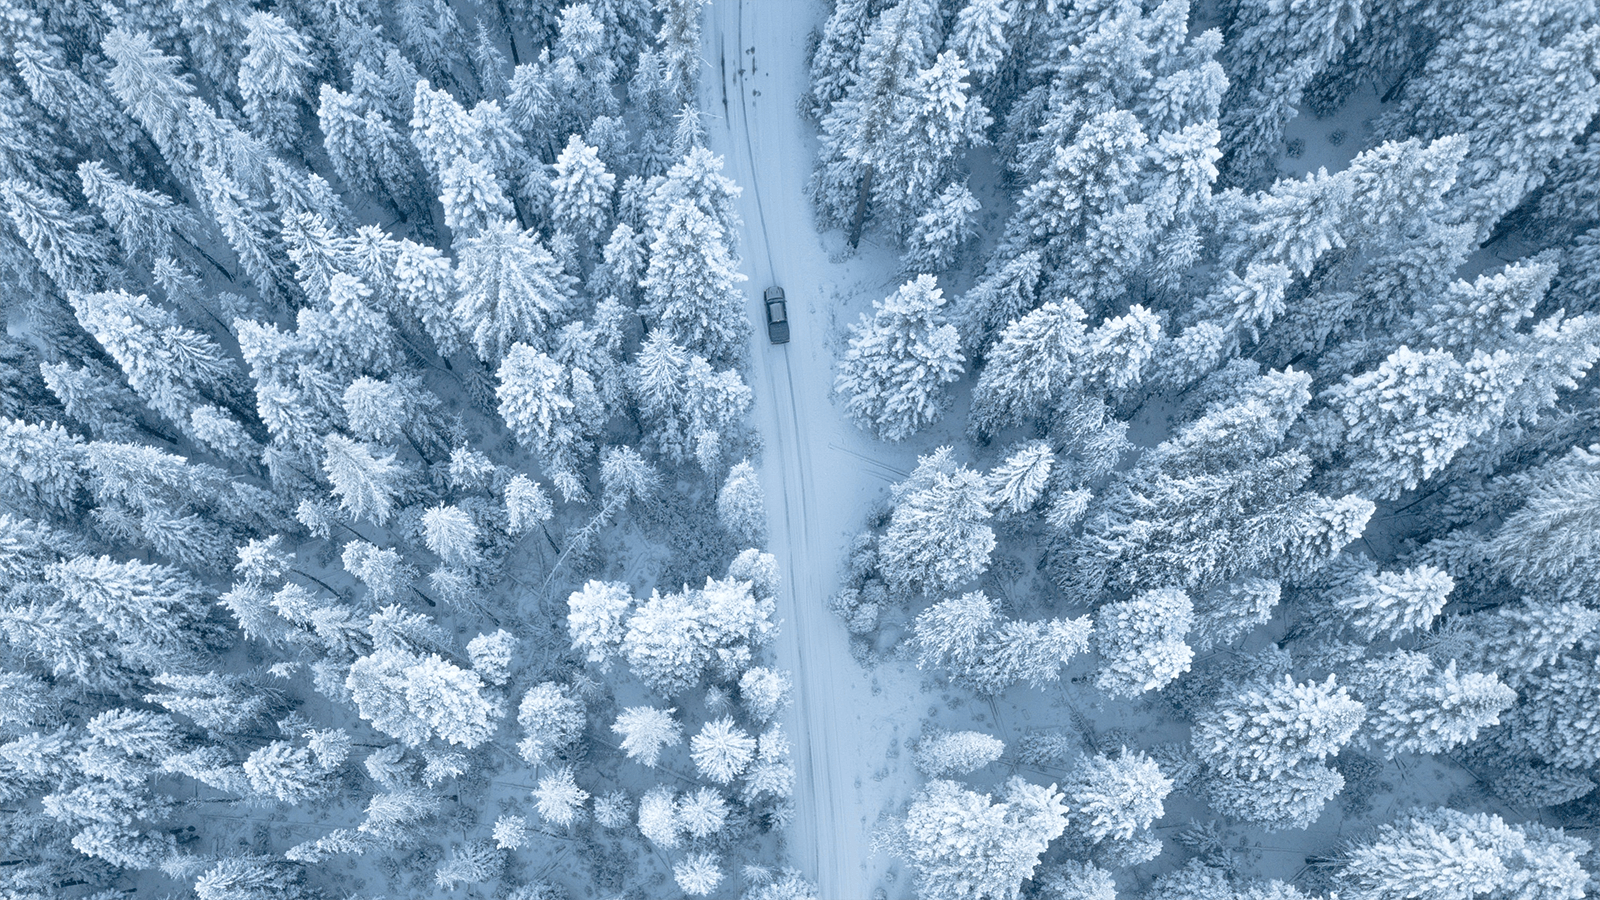 aerial view of car on snowy road